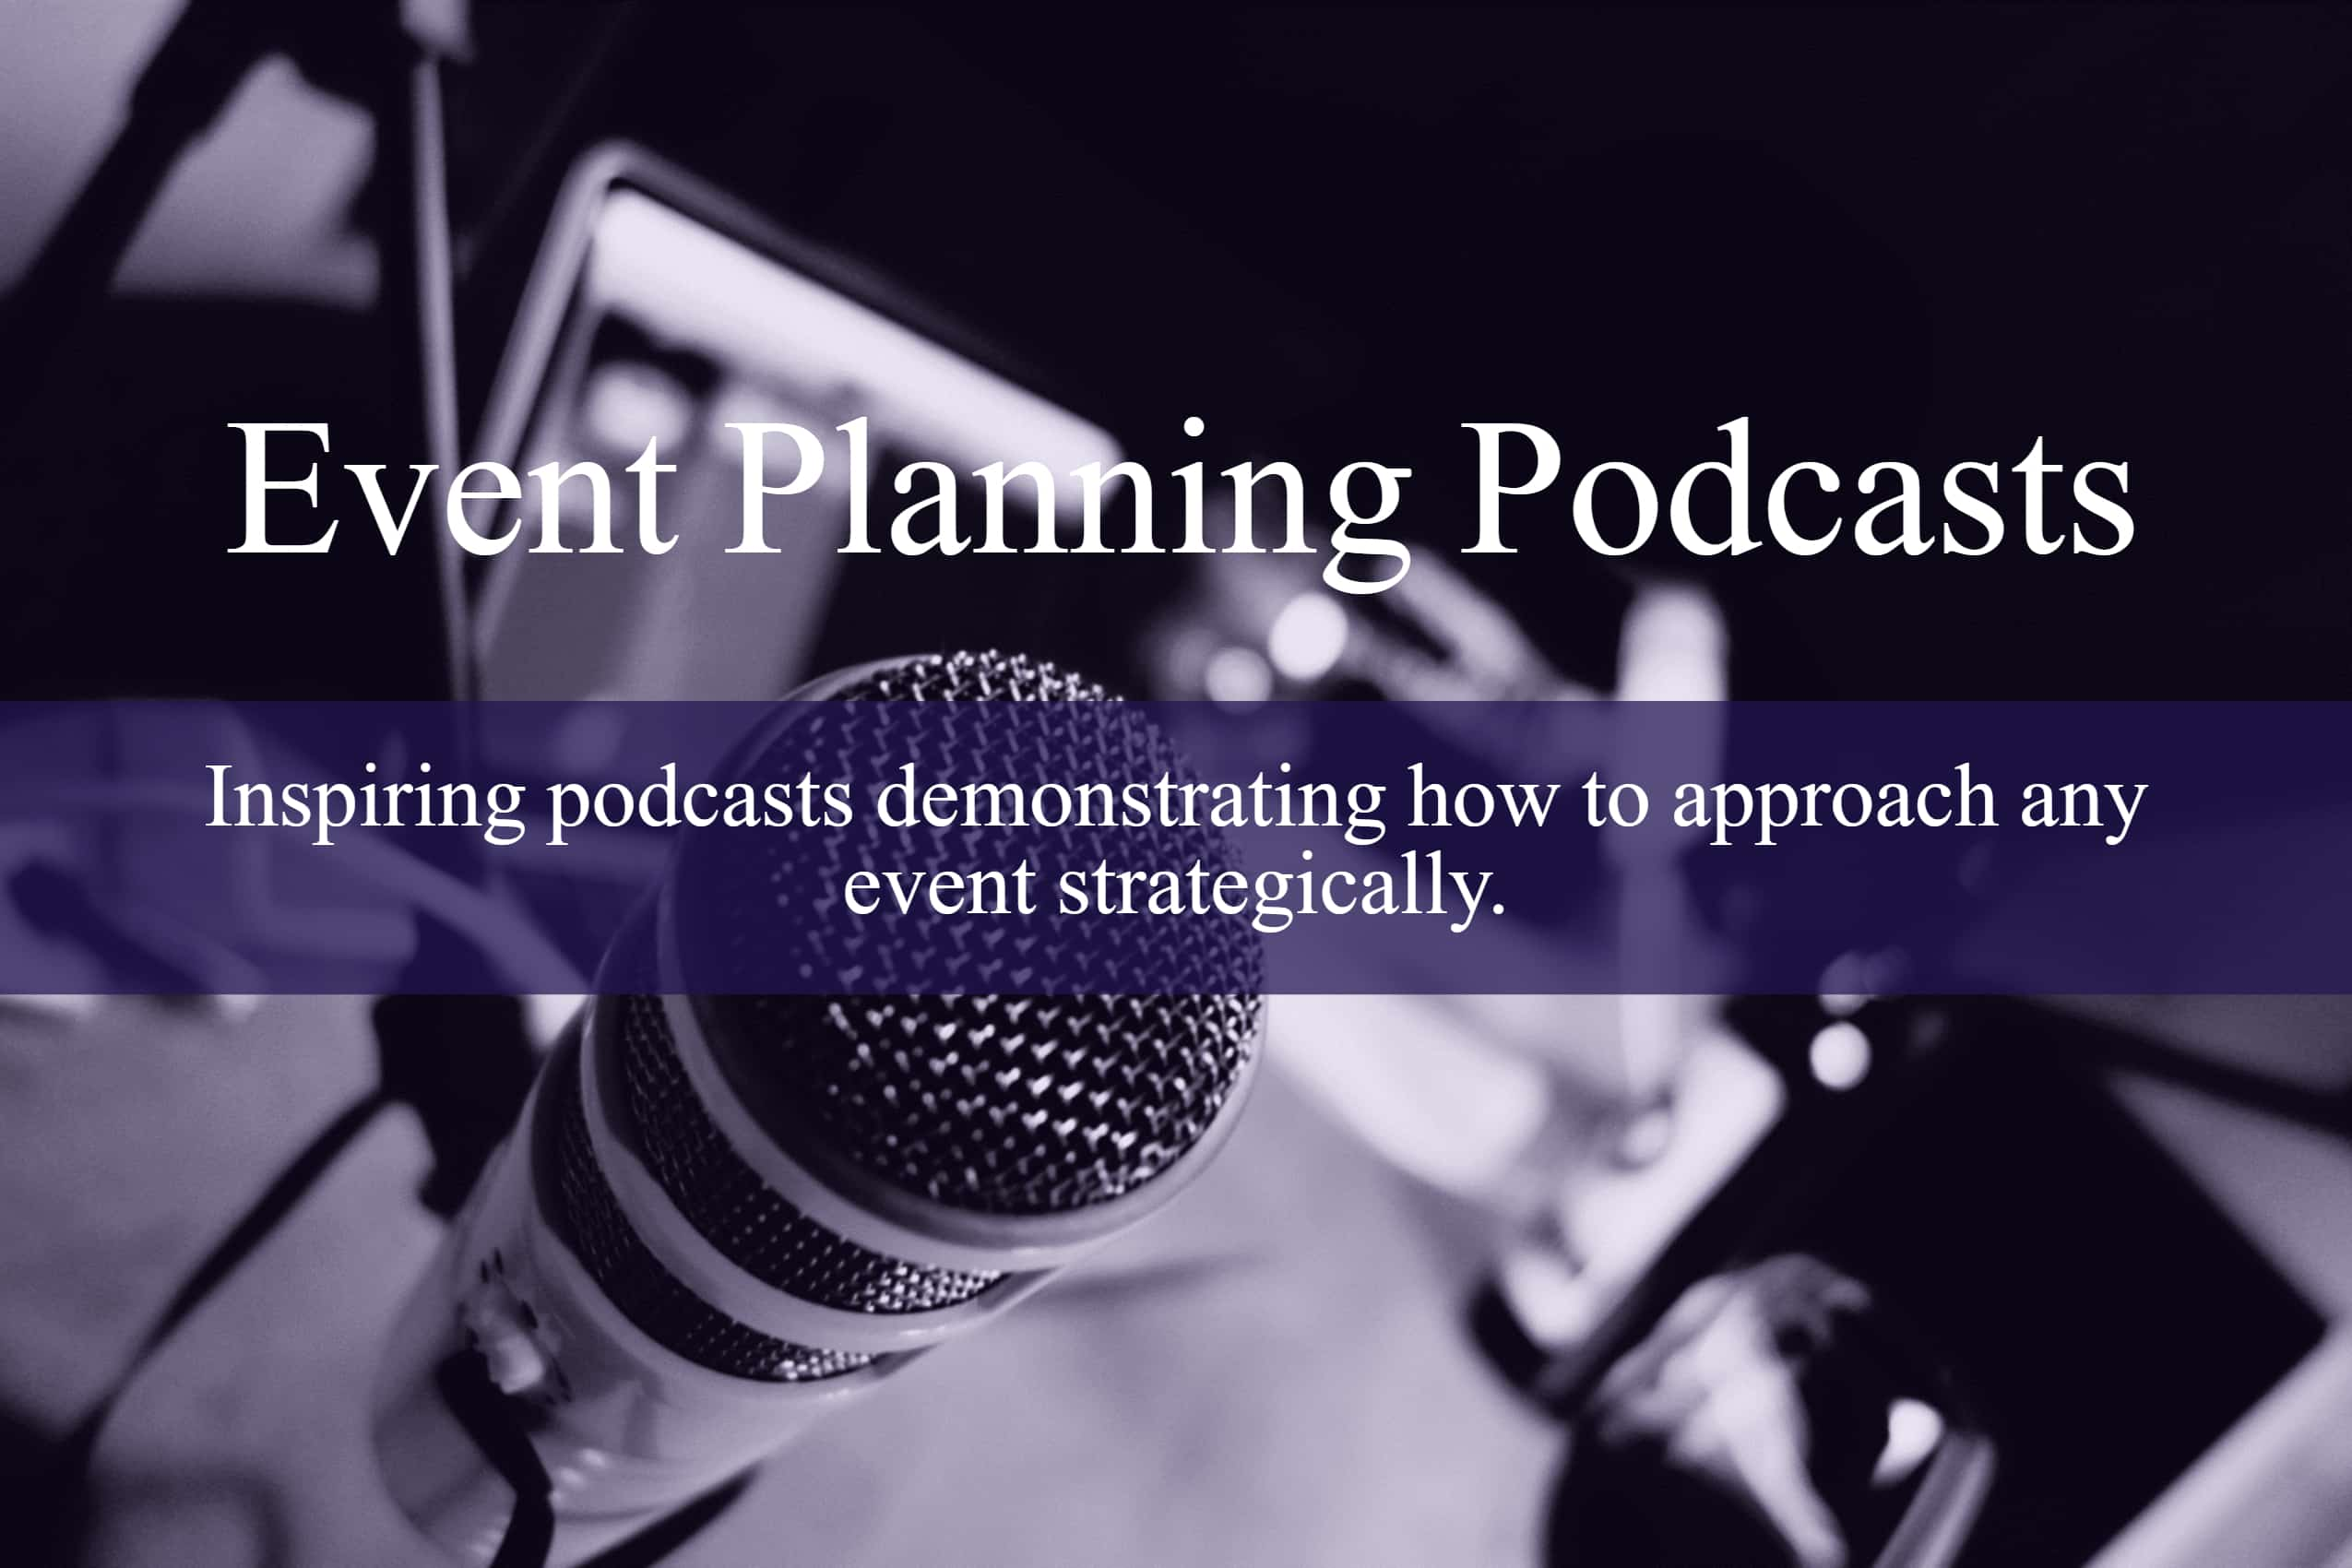 Strategic Event Planning Podcasts